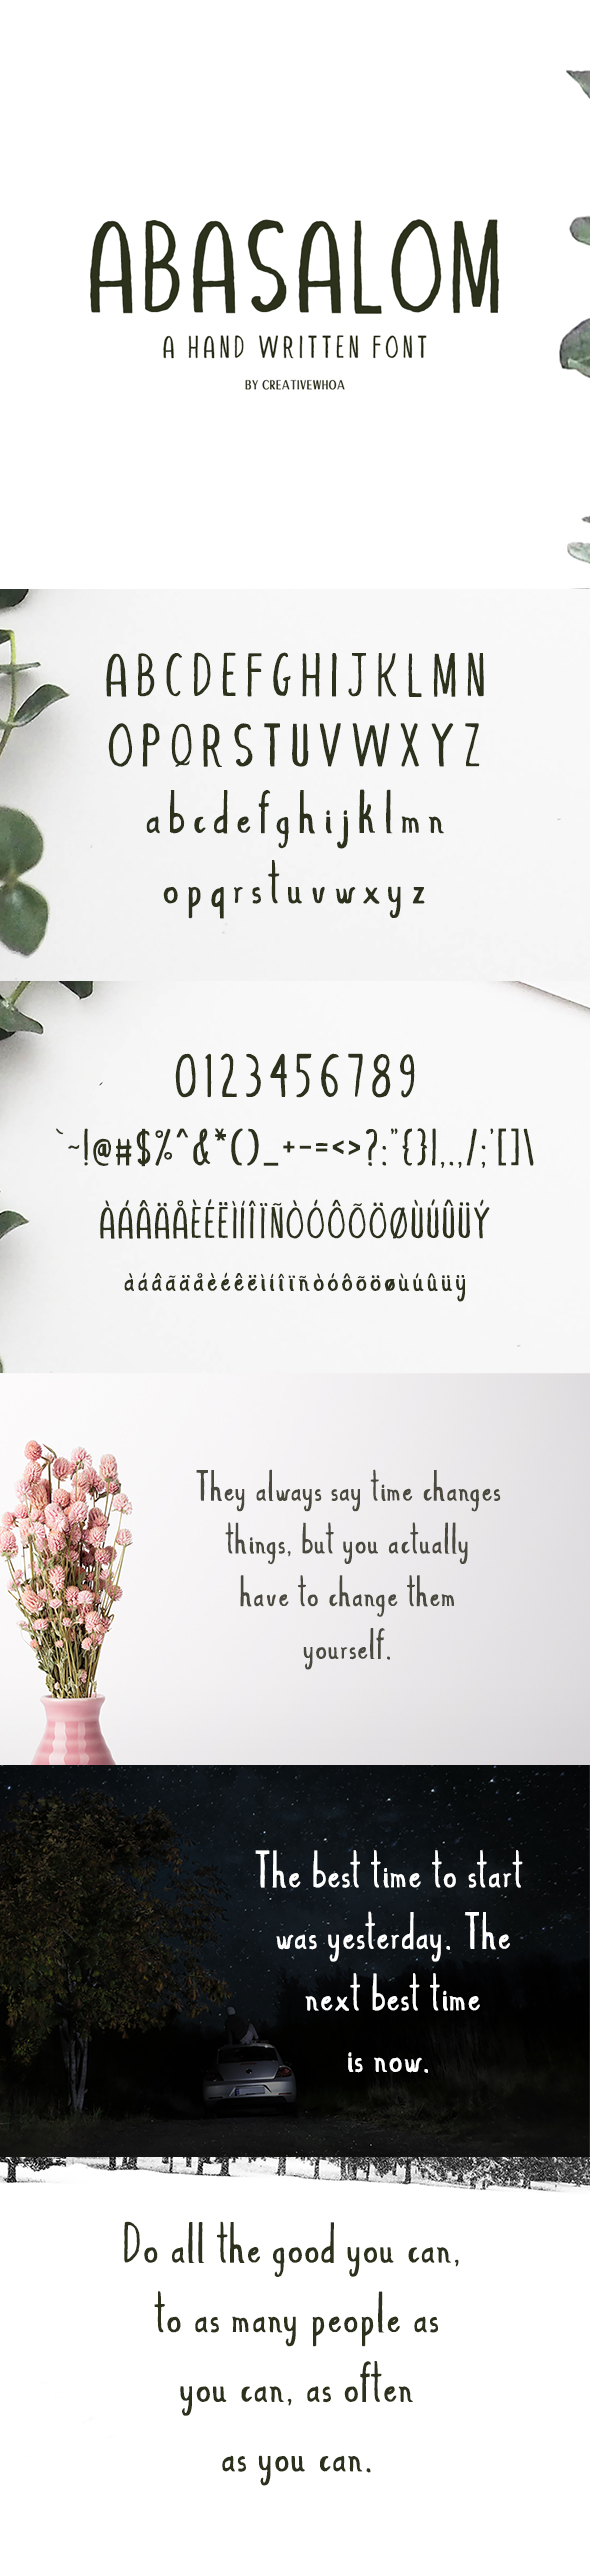 GraphicRiver Abasalom A Handwritten Font 21056008